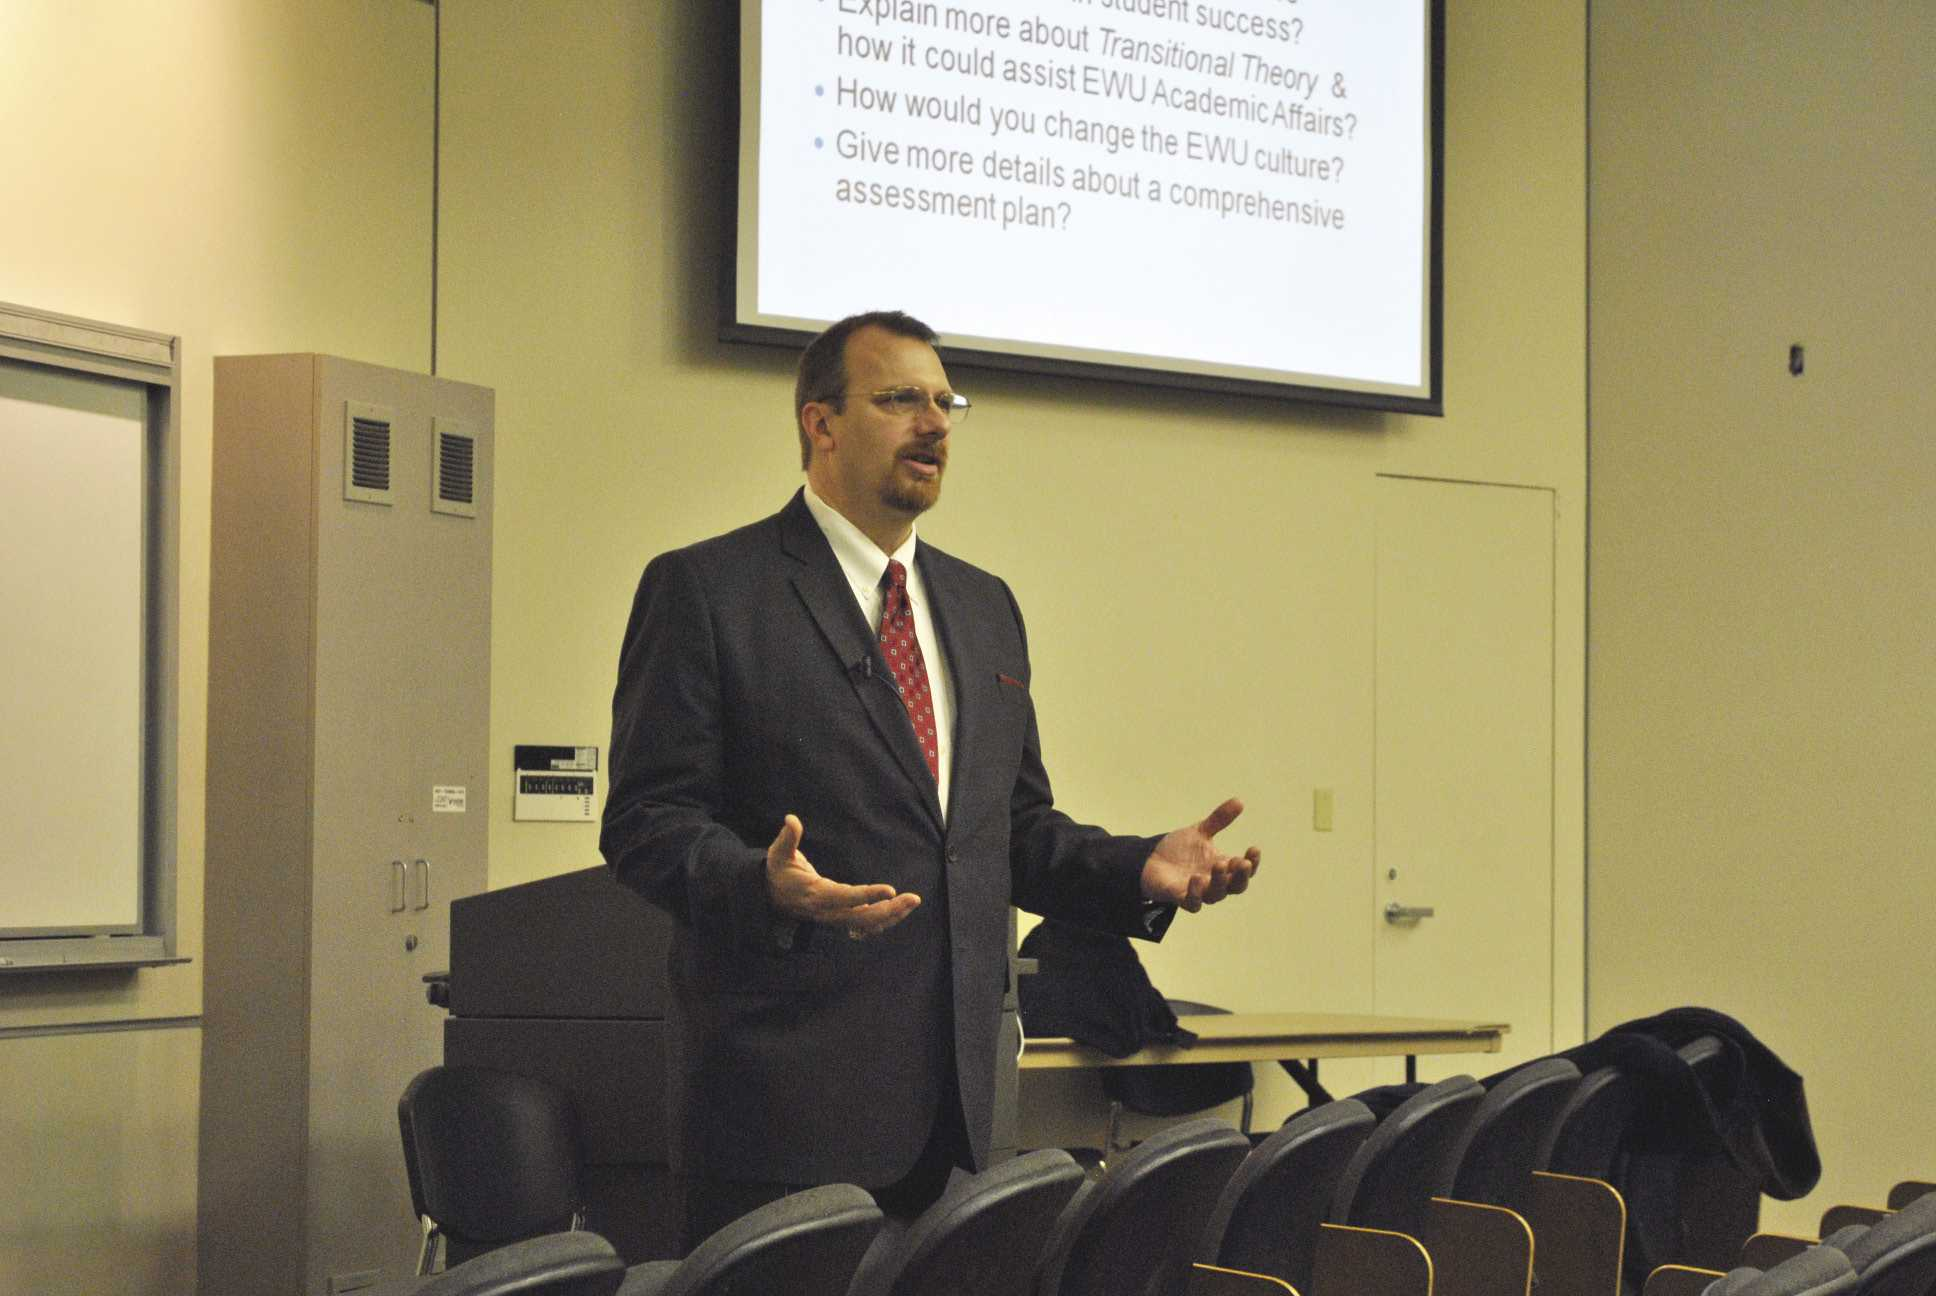 Dr. Charles Lopez, a vice provost candidate from Nagadoches, Texas, spoke at an open forum last week. Photo by Nic Olson